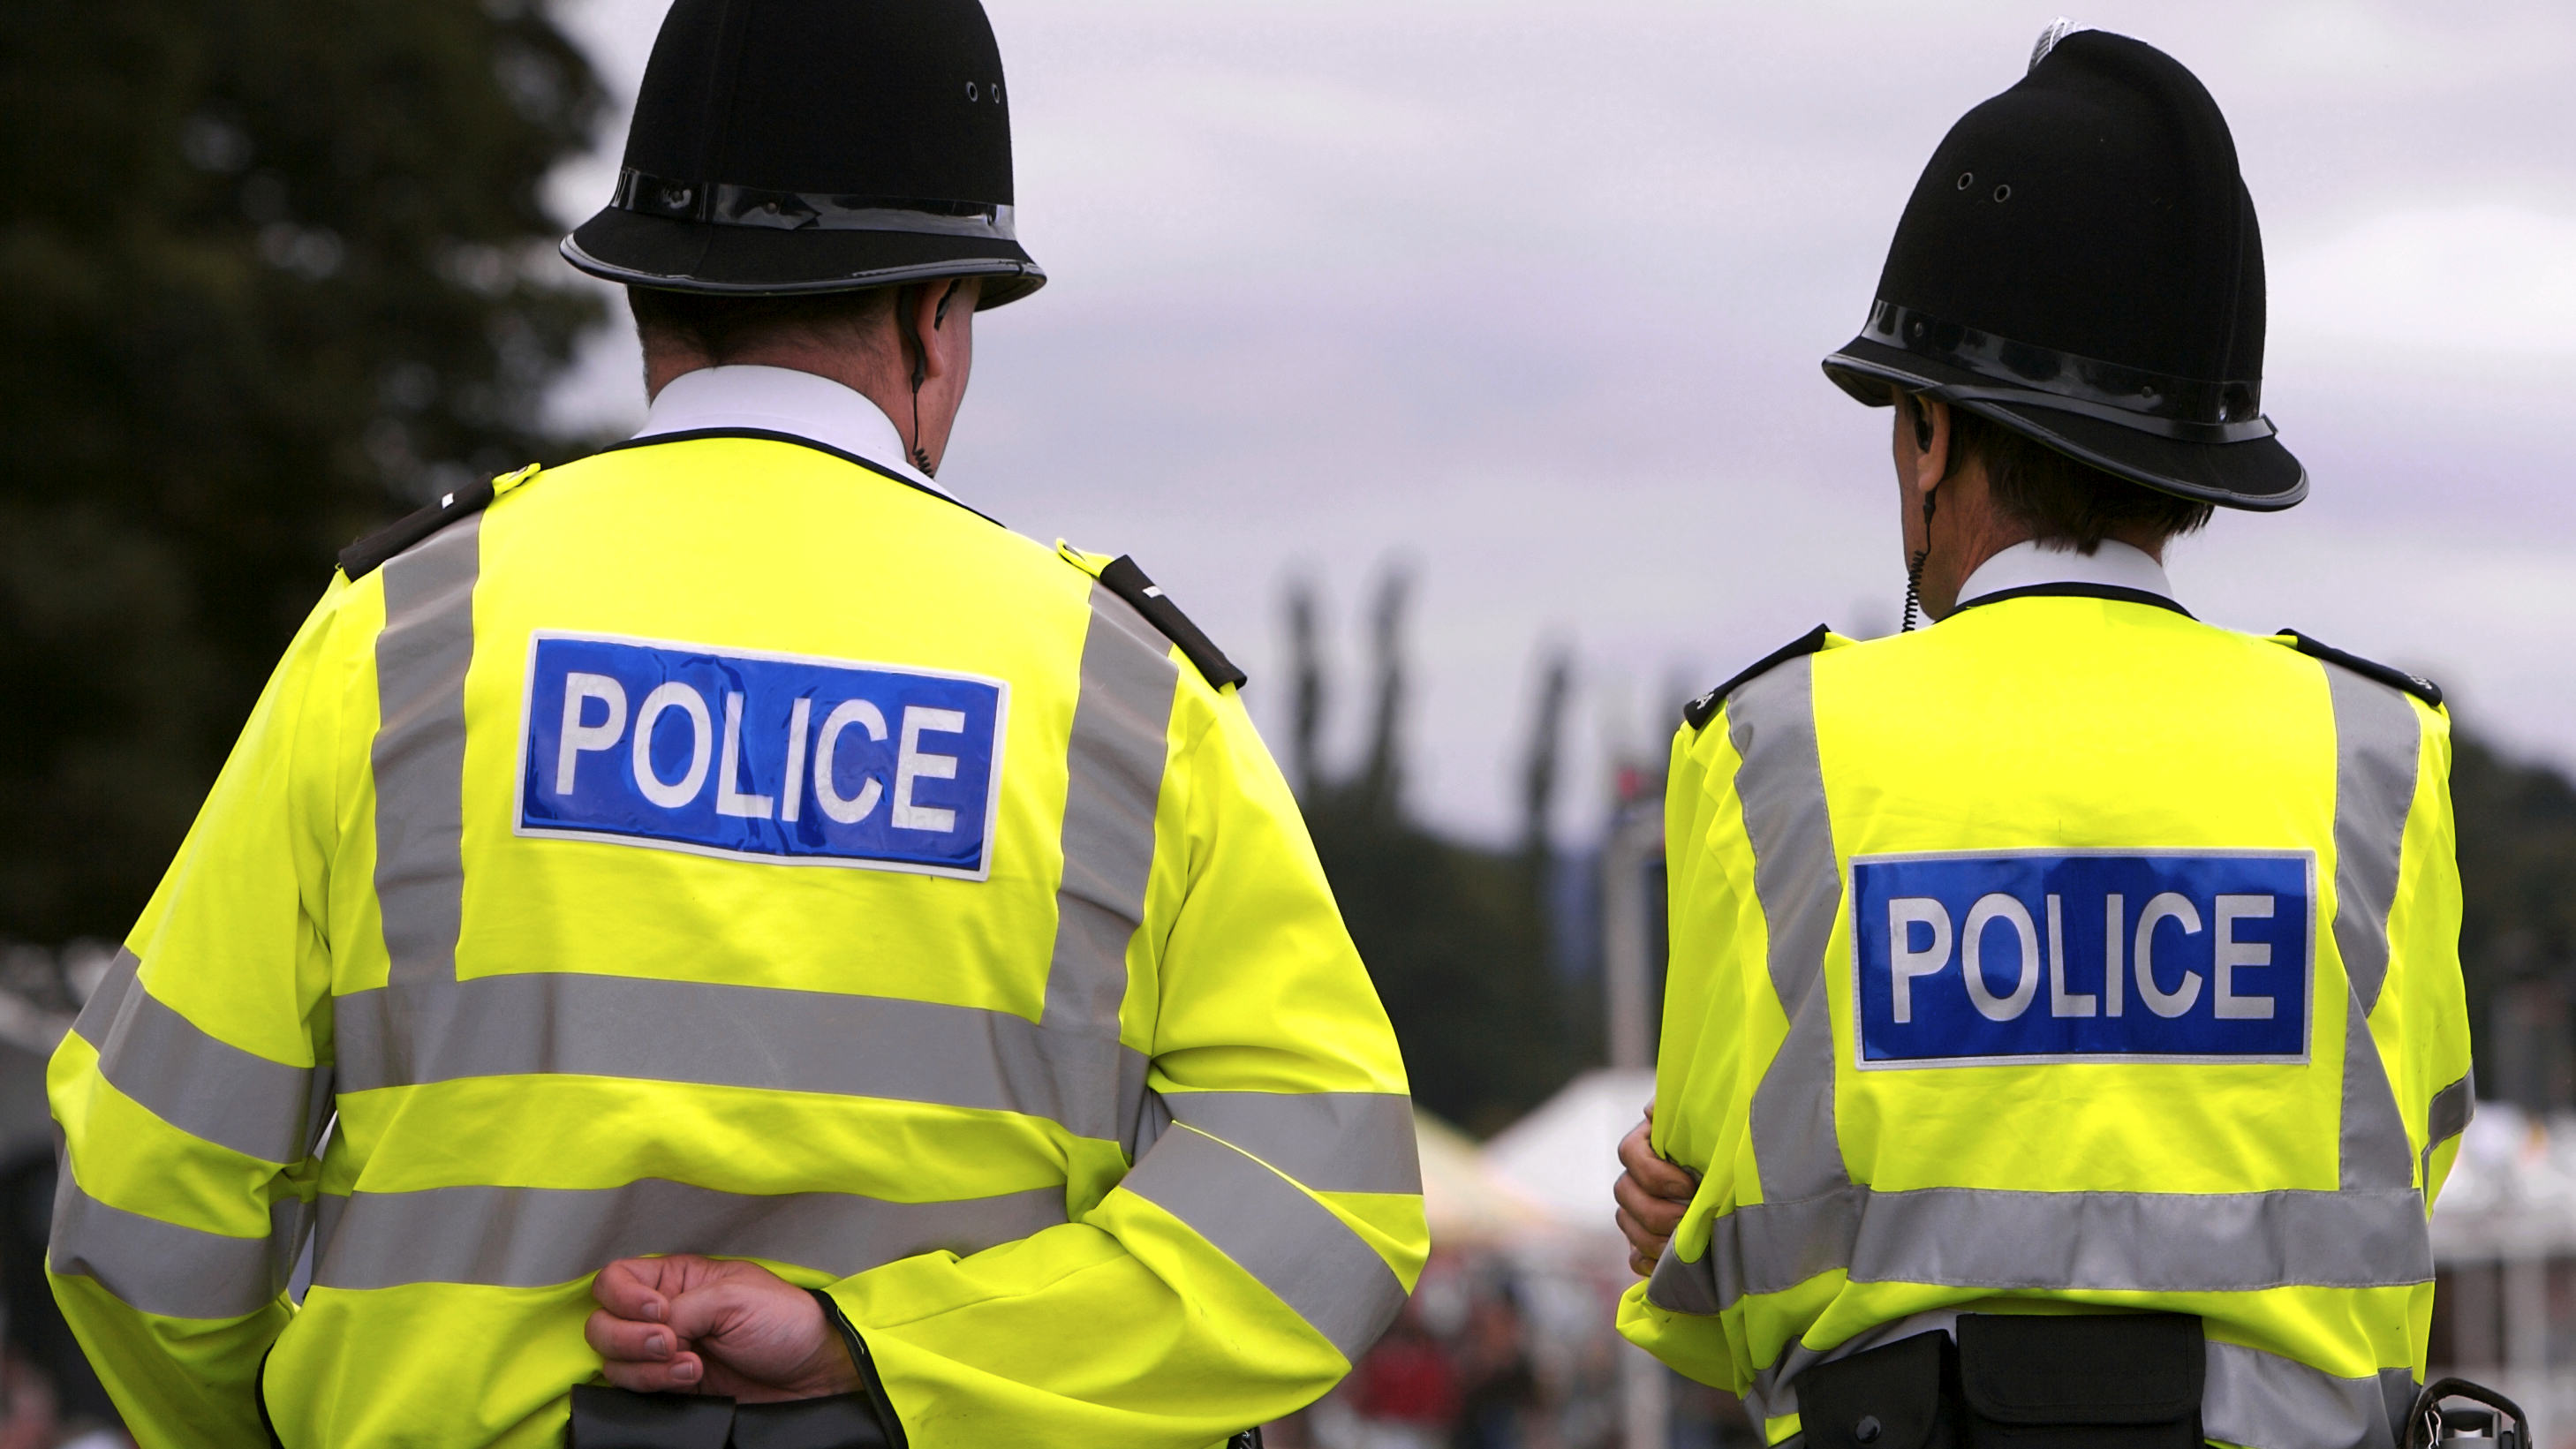 Police To Pay Rape Victim £20,000 After Initially Threatening Her With Charges 29 police g w